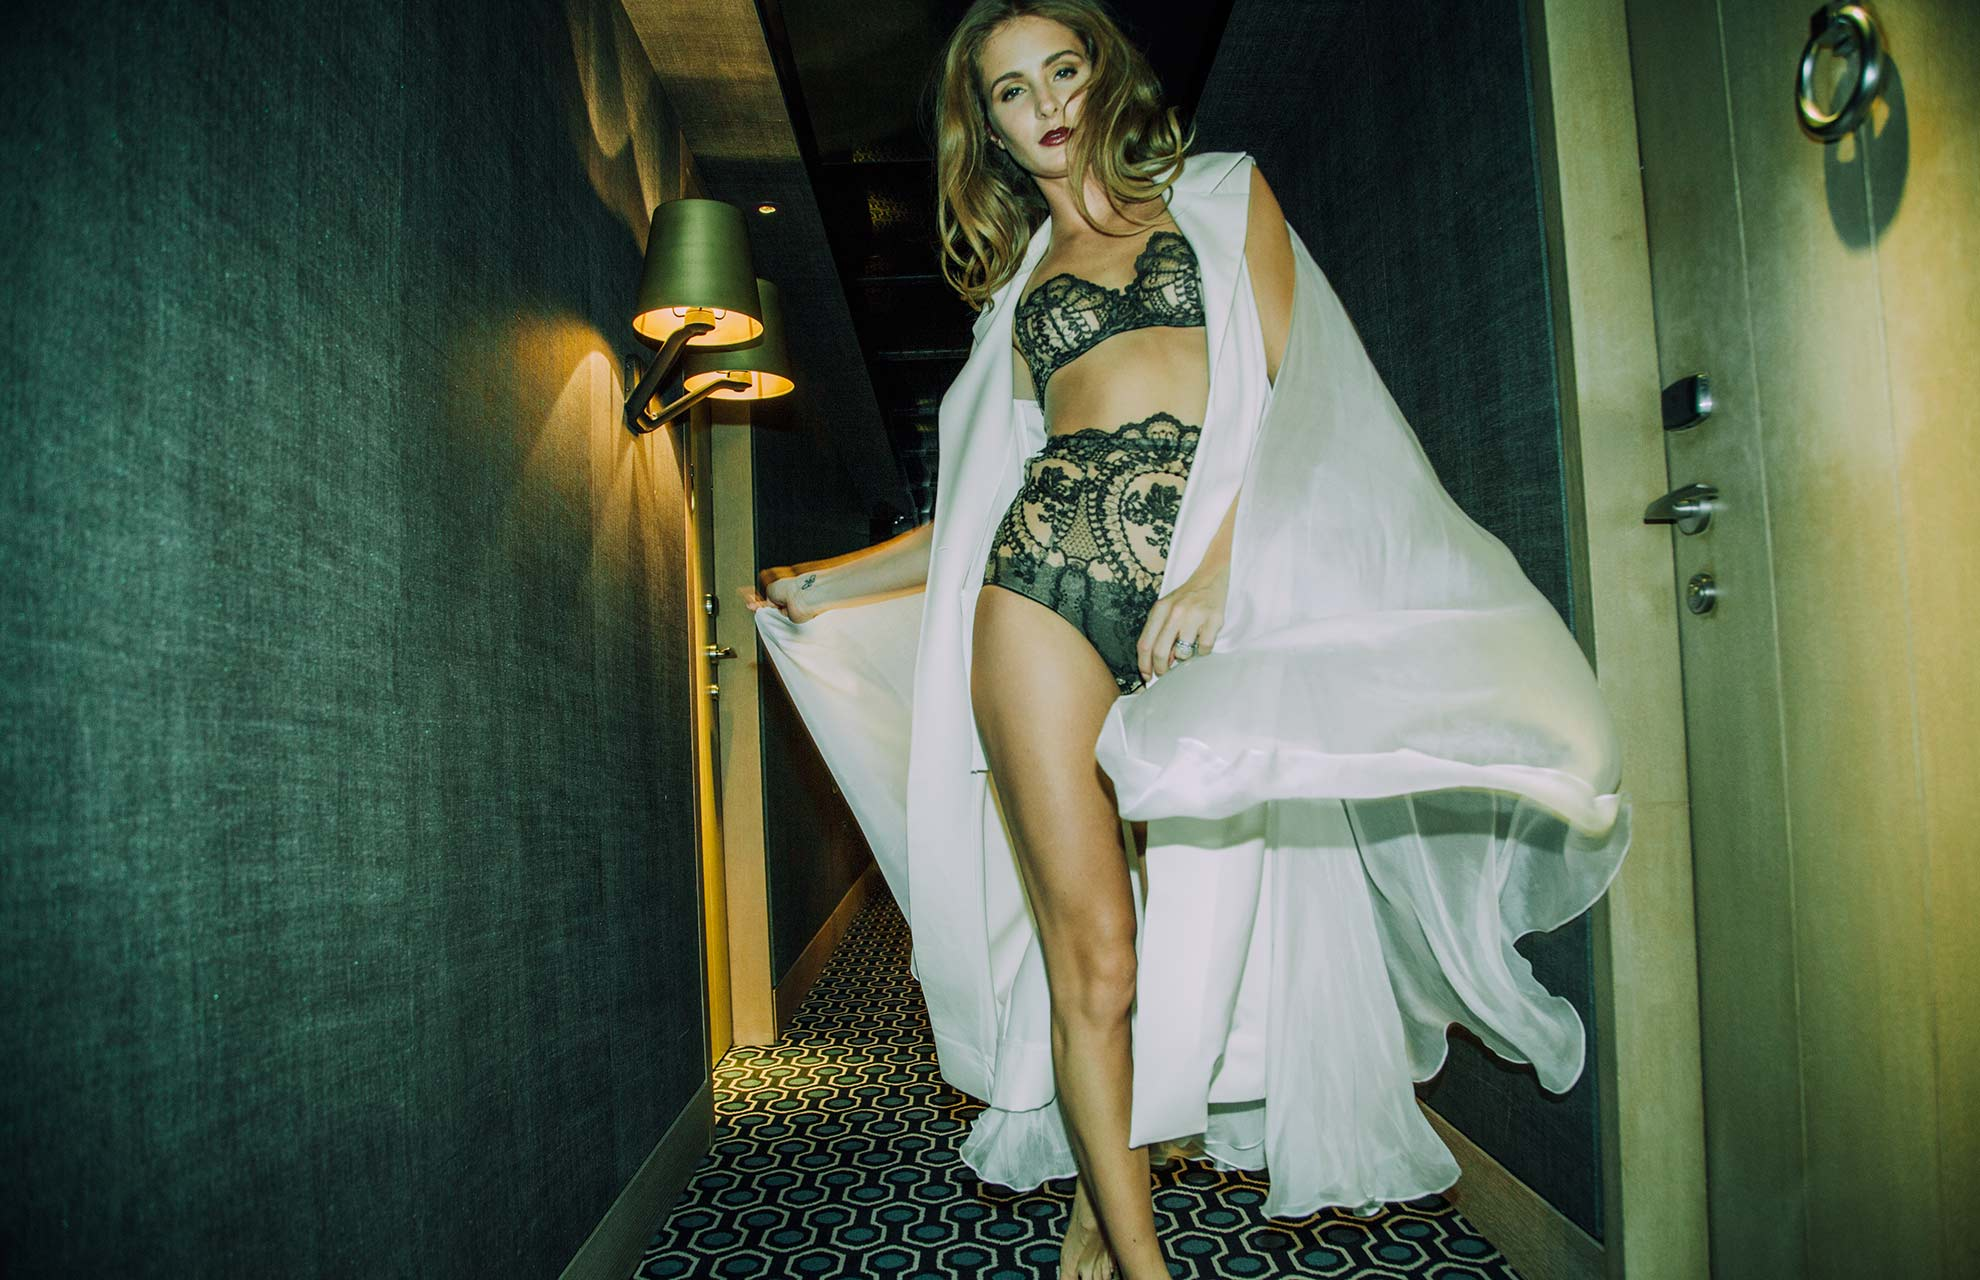 Millie mackintosh in underwear